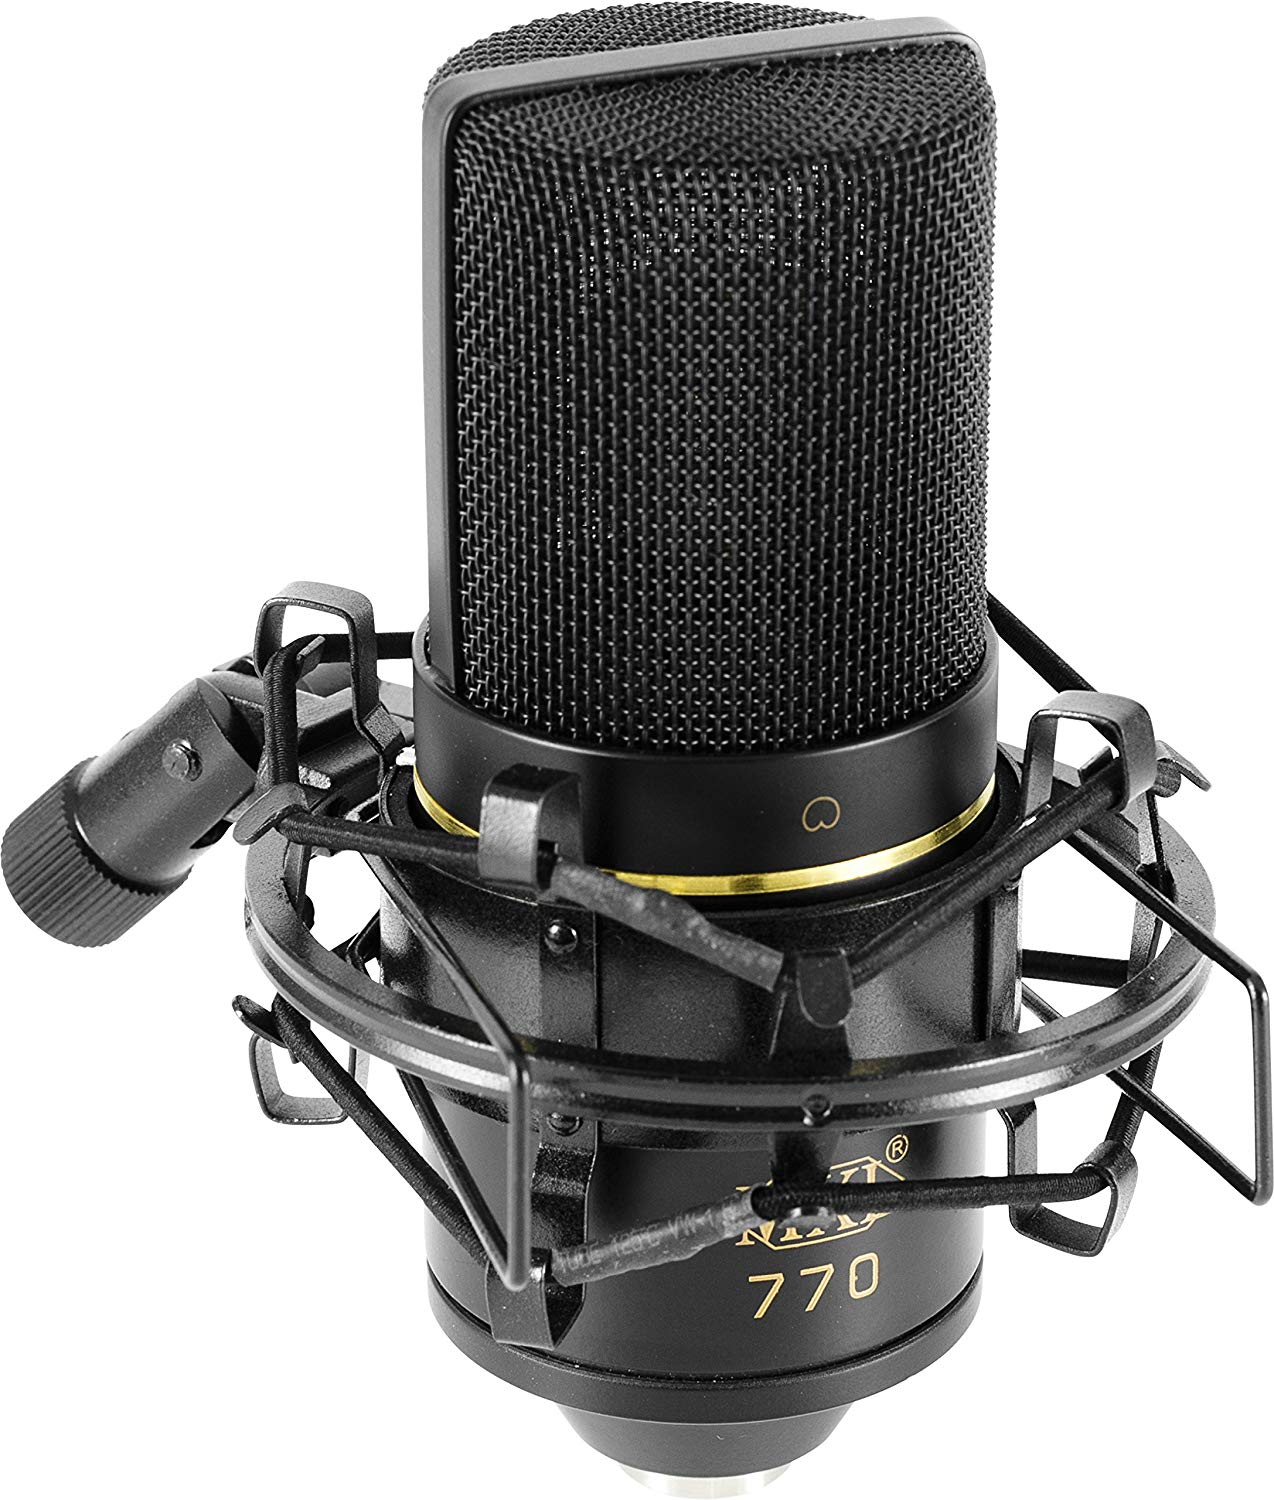 ​MXL 770 as one of The Best Microphones For Singing